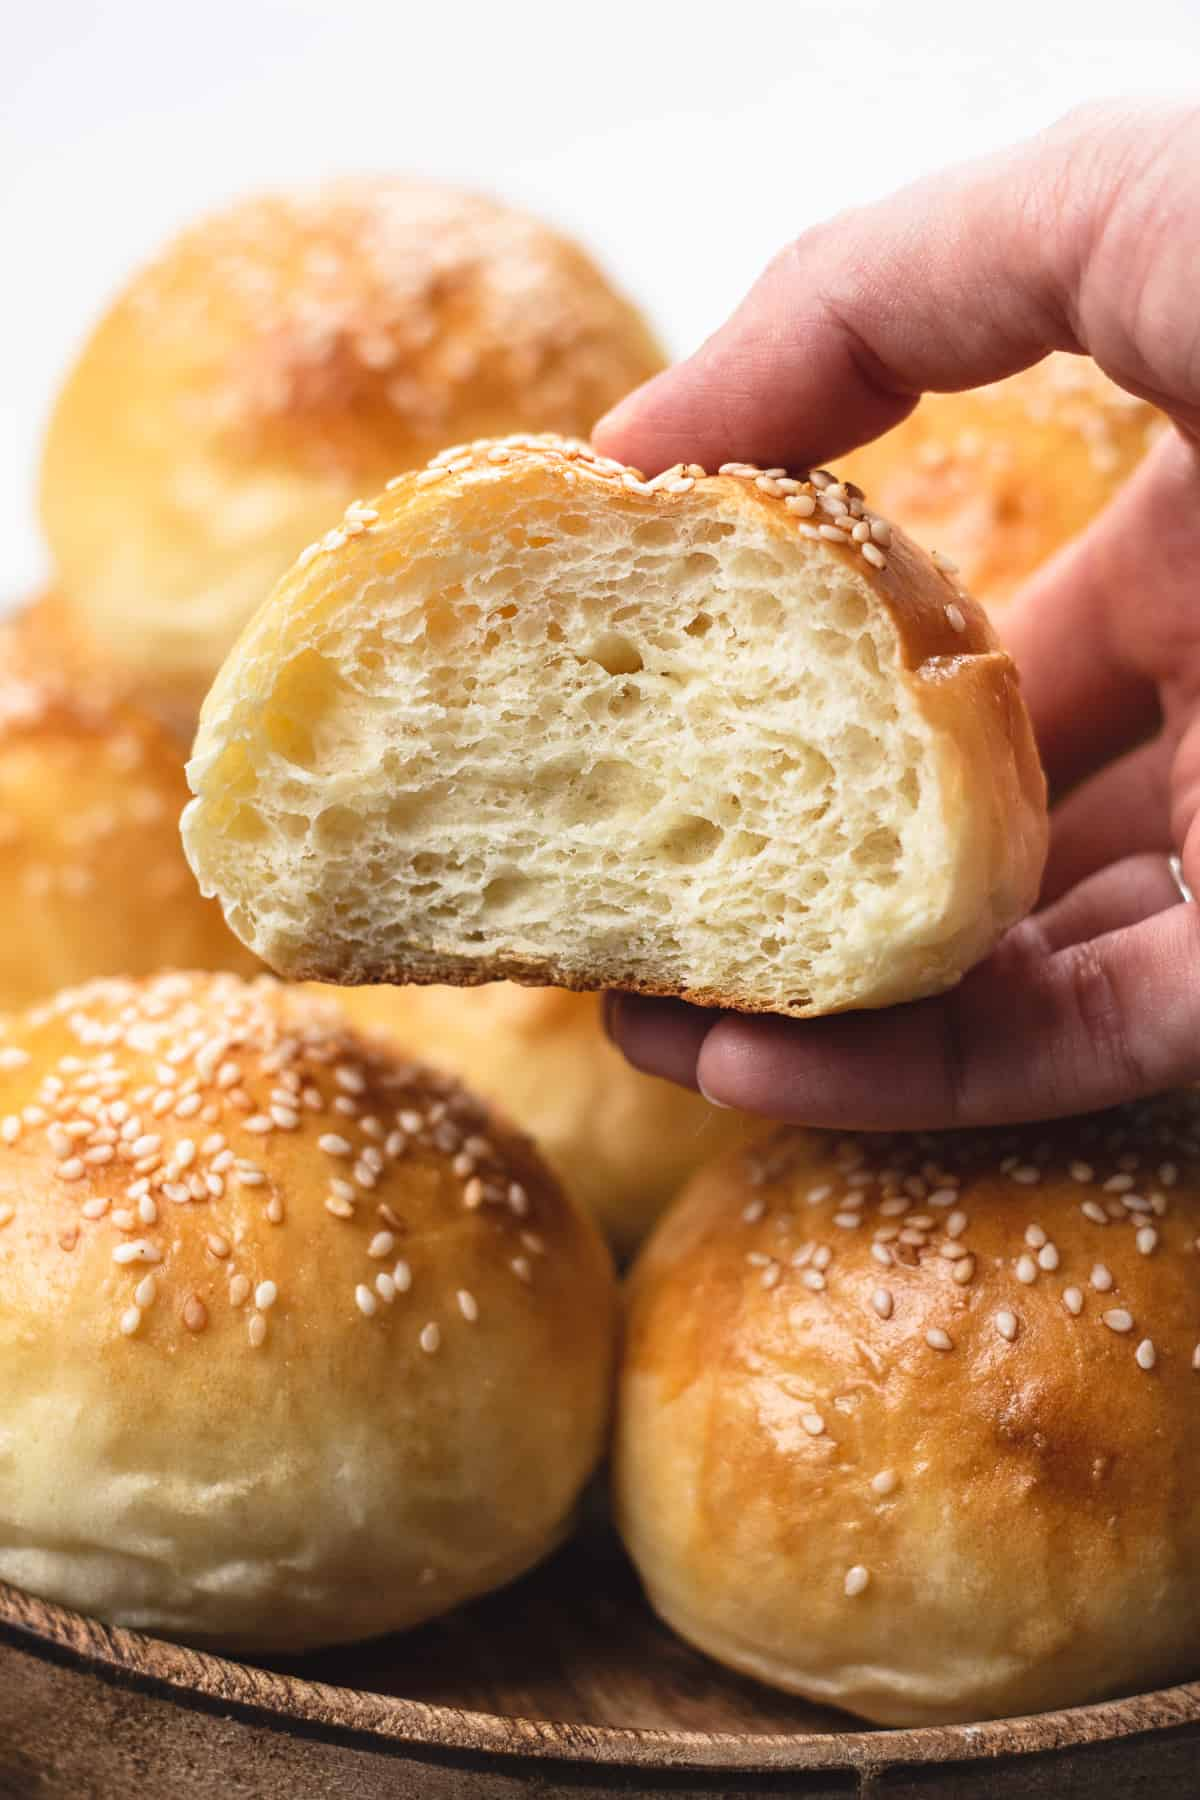 A close up photo of potato rolls topped with sesame seeds.